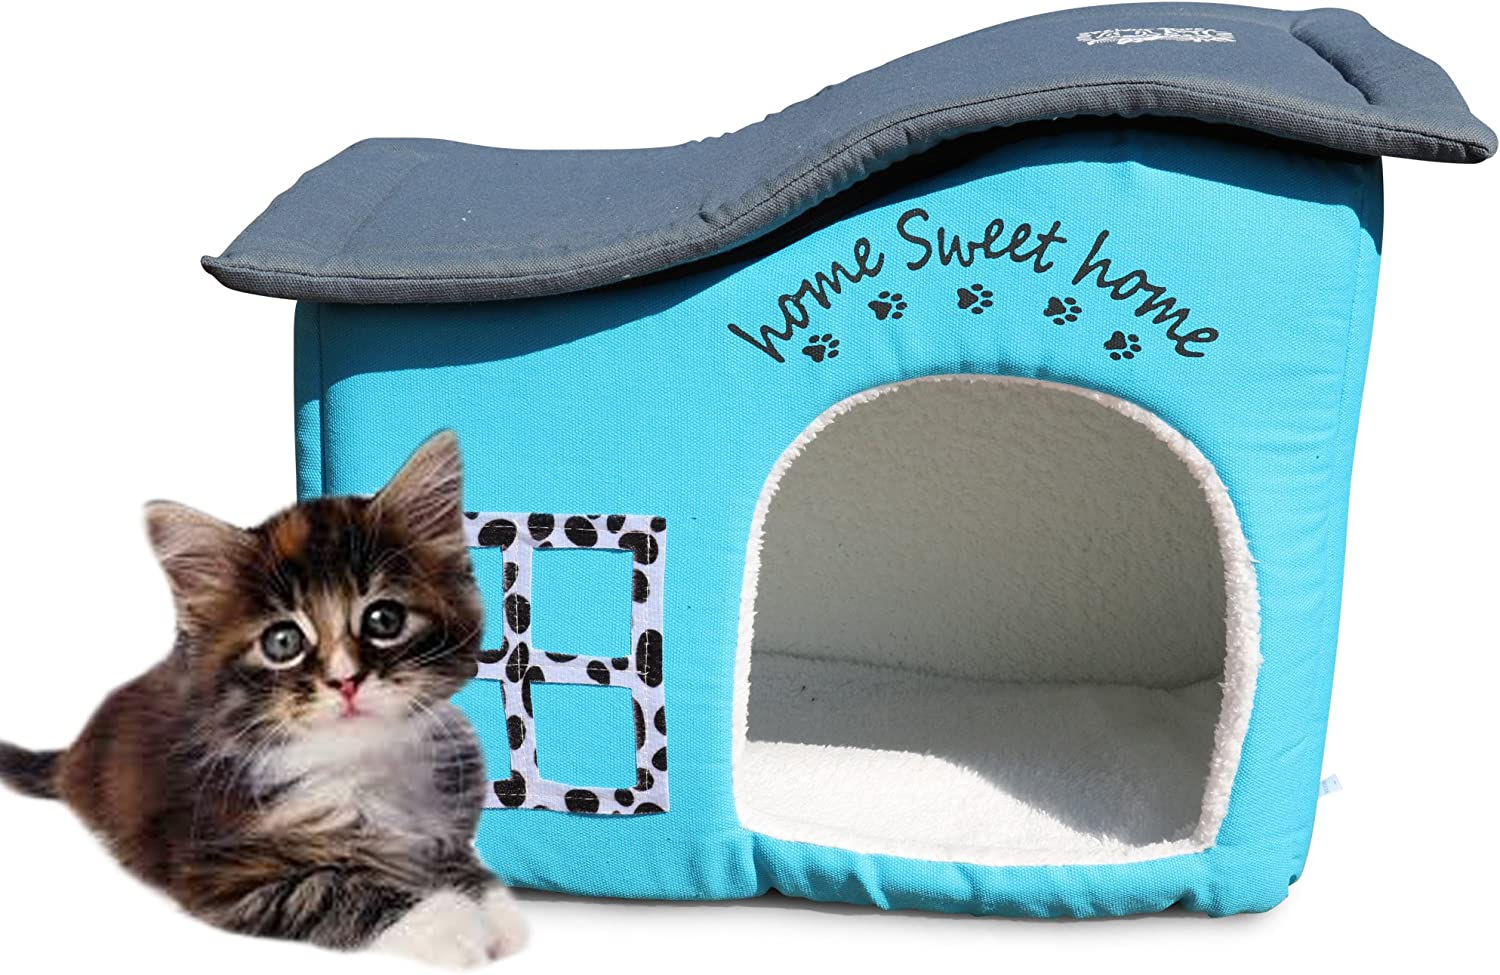 Feline Ruff Indoor Cat House. an Extra Sturdy Luxury Covered Indoor Cat Bed Condo with Cushion. Pet House Shelter for Dogs and Other Pets Too. (Home Sweet Home)